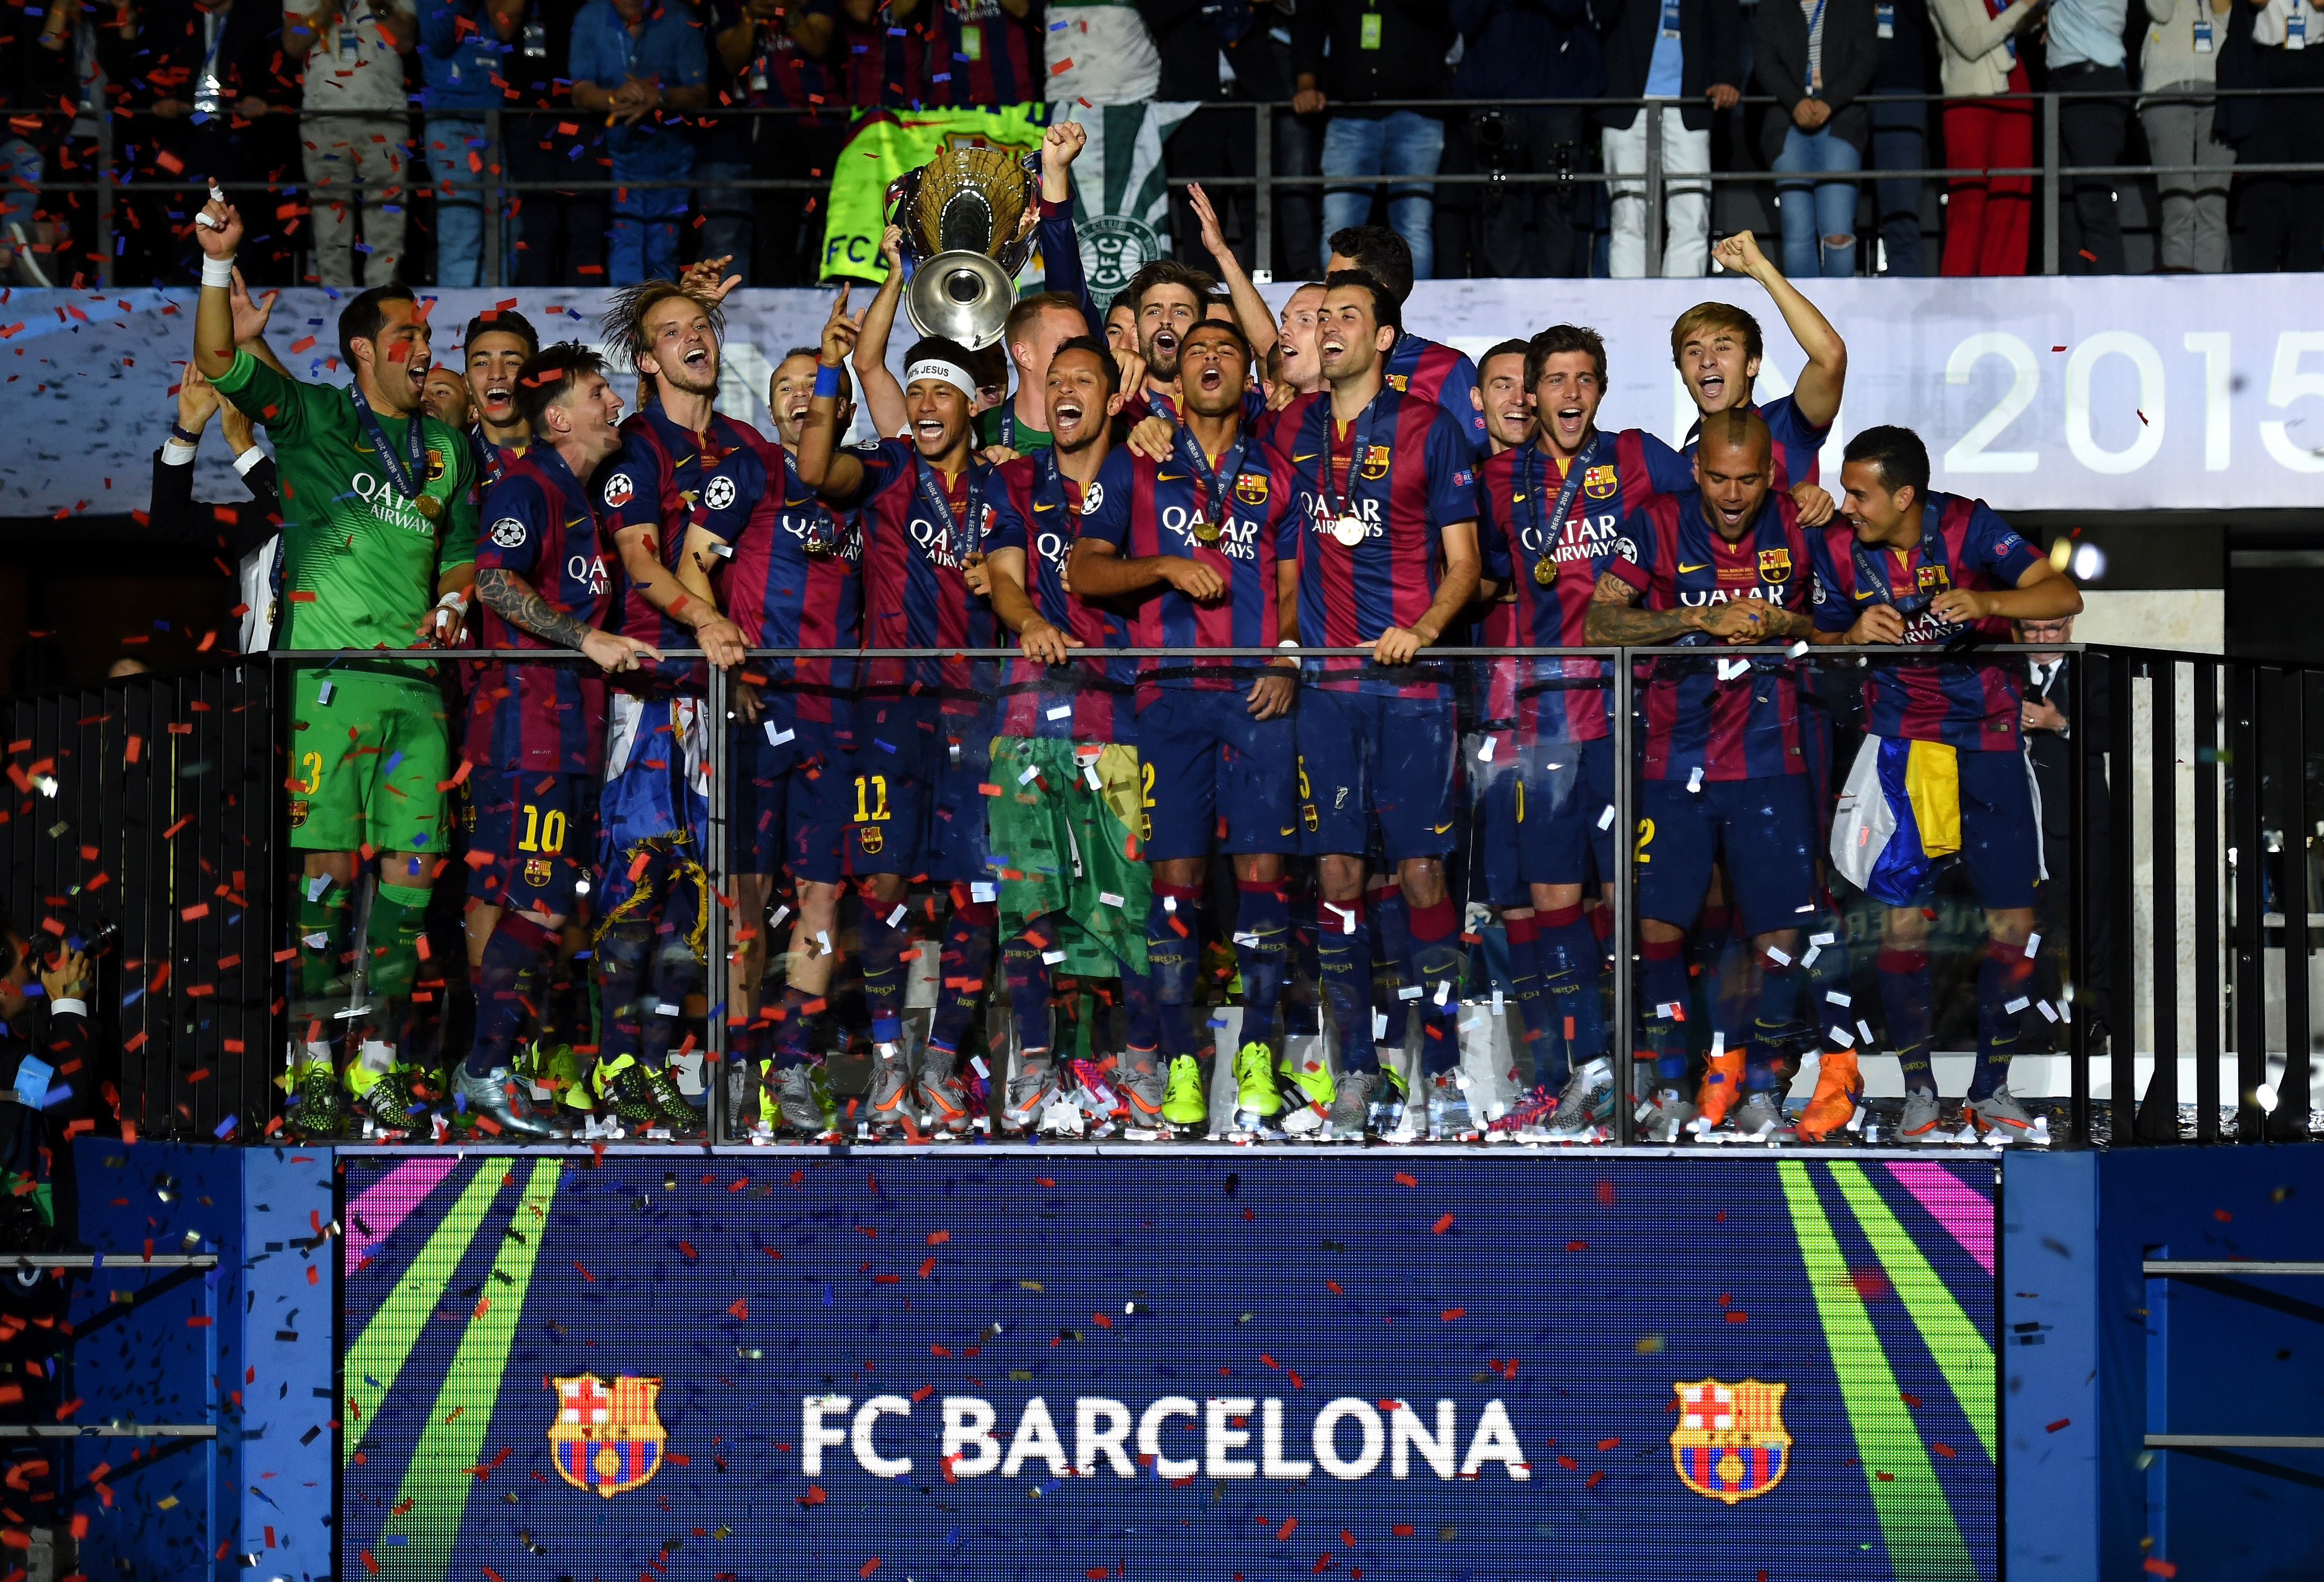 Uefa Champions League Final Recap Highlights Barcelona Crowned Champions Of Europe With 3 1 Victory Over Juventus Video